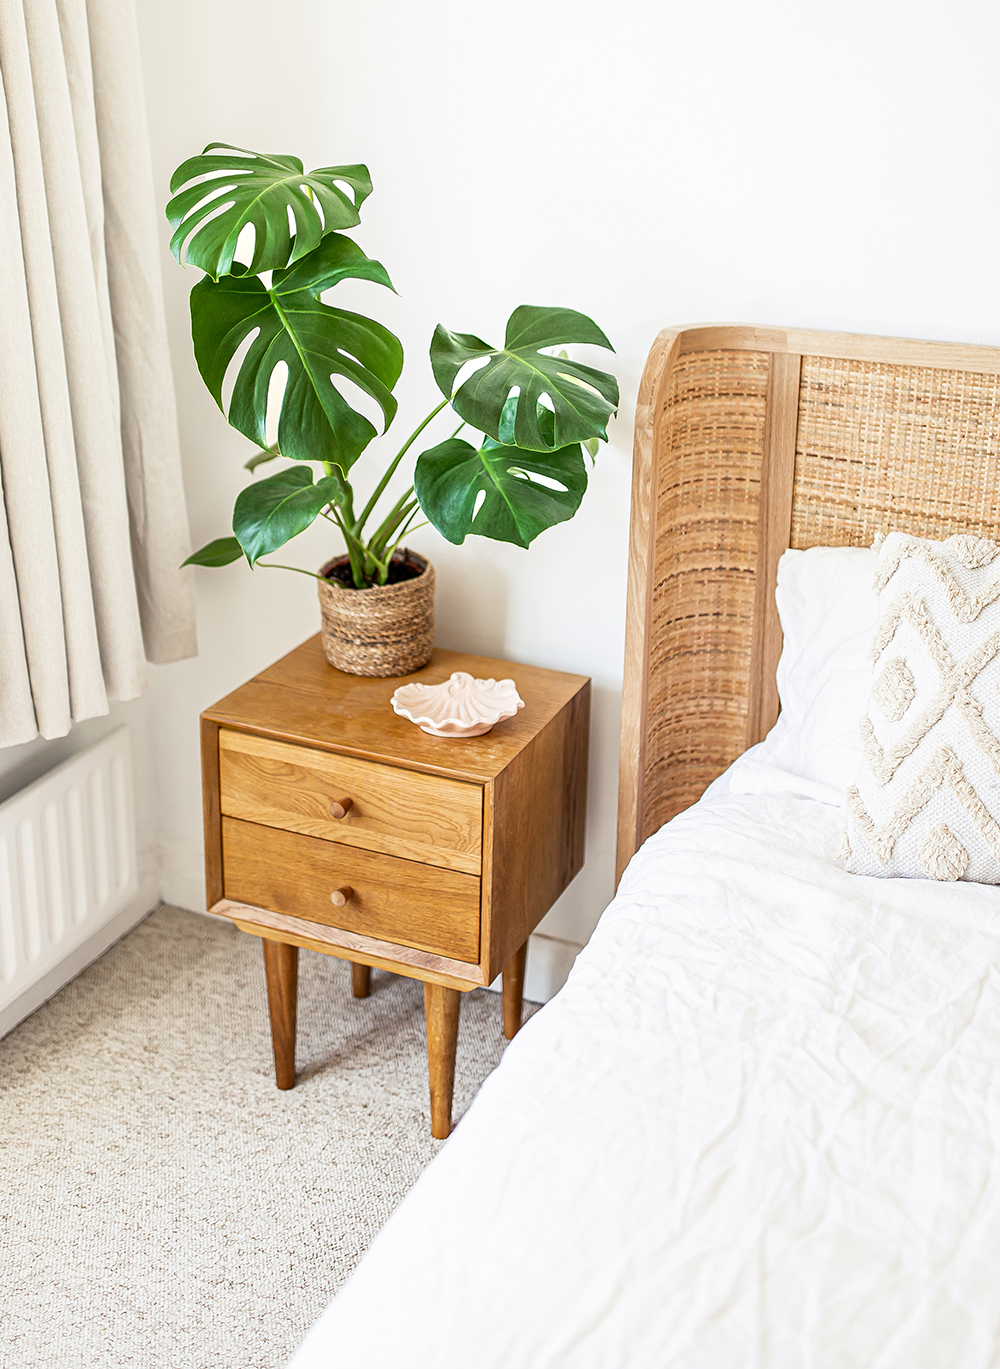 swiss-cheese-plant-Monstera-deliciosa--kelseyinlondon-homewithkelsey-plant-guide-best-indoor-plants